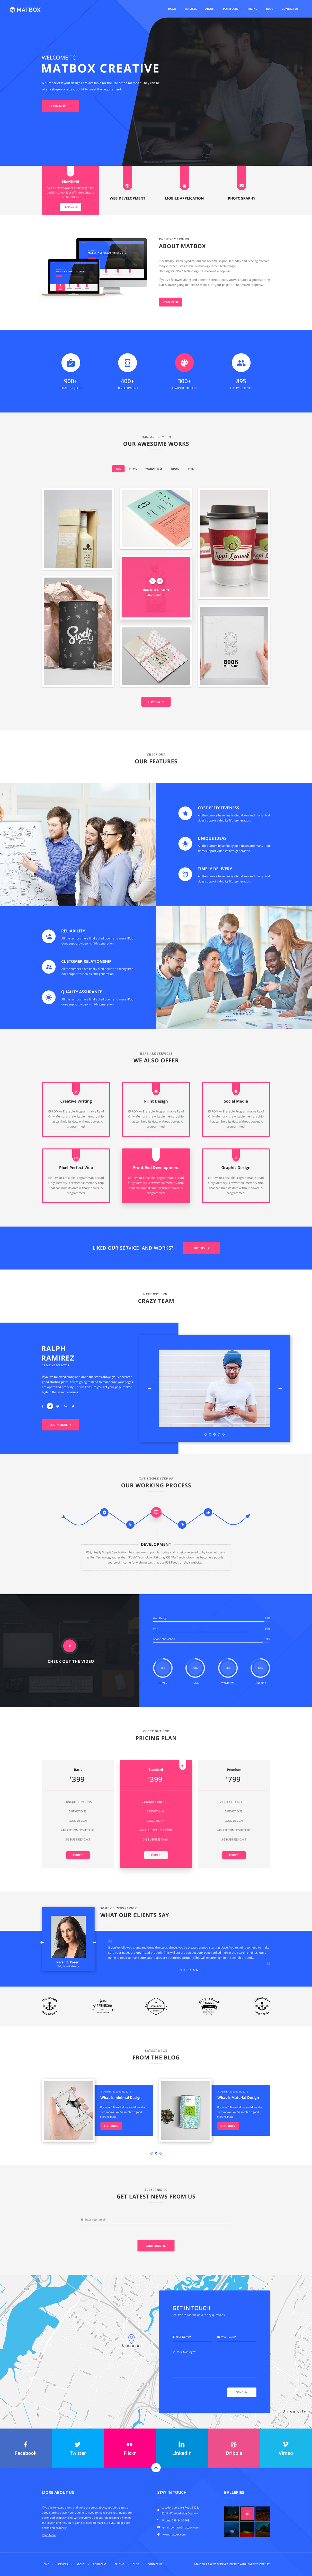 Matbox material design agency template by theme flat for Household design agency